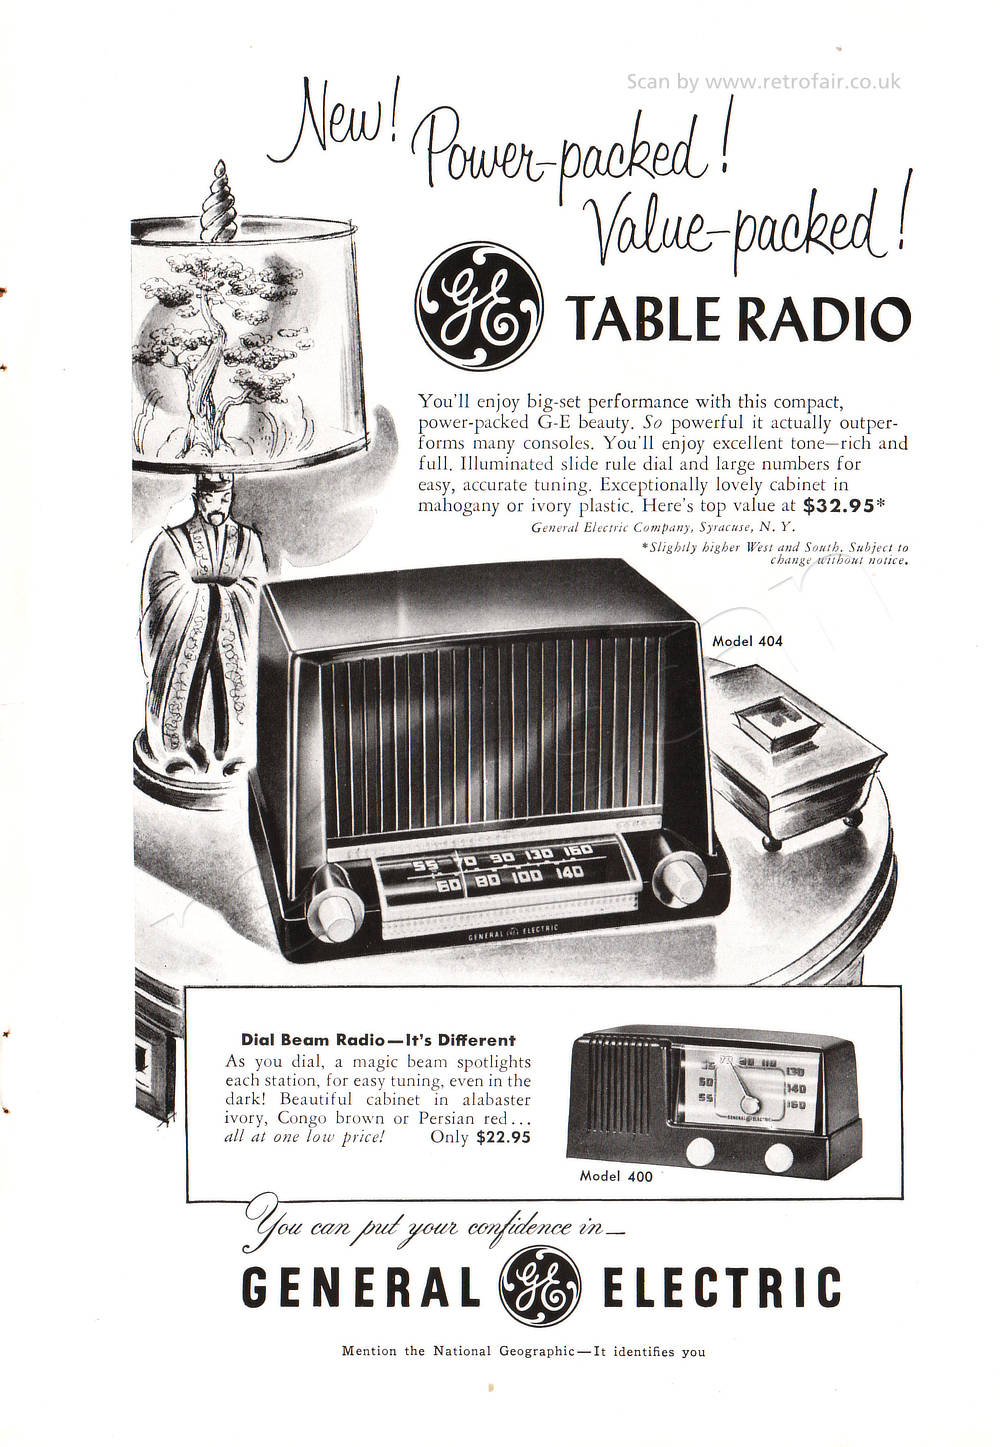 1951 General Electric Table Radio - unframed vintage ad